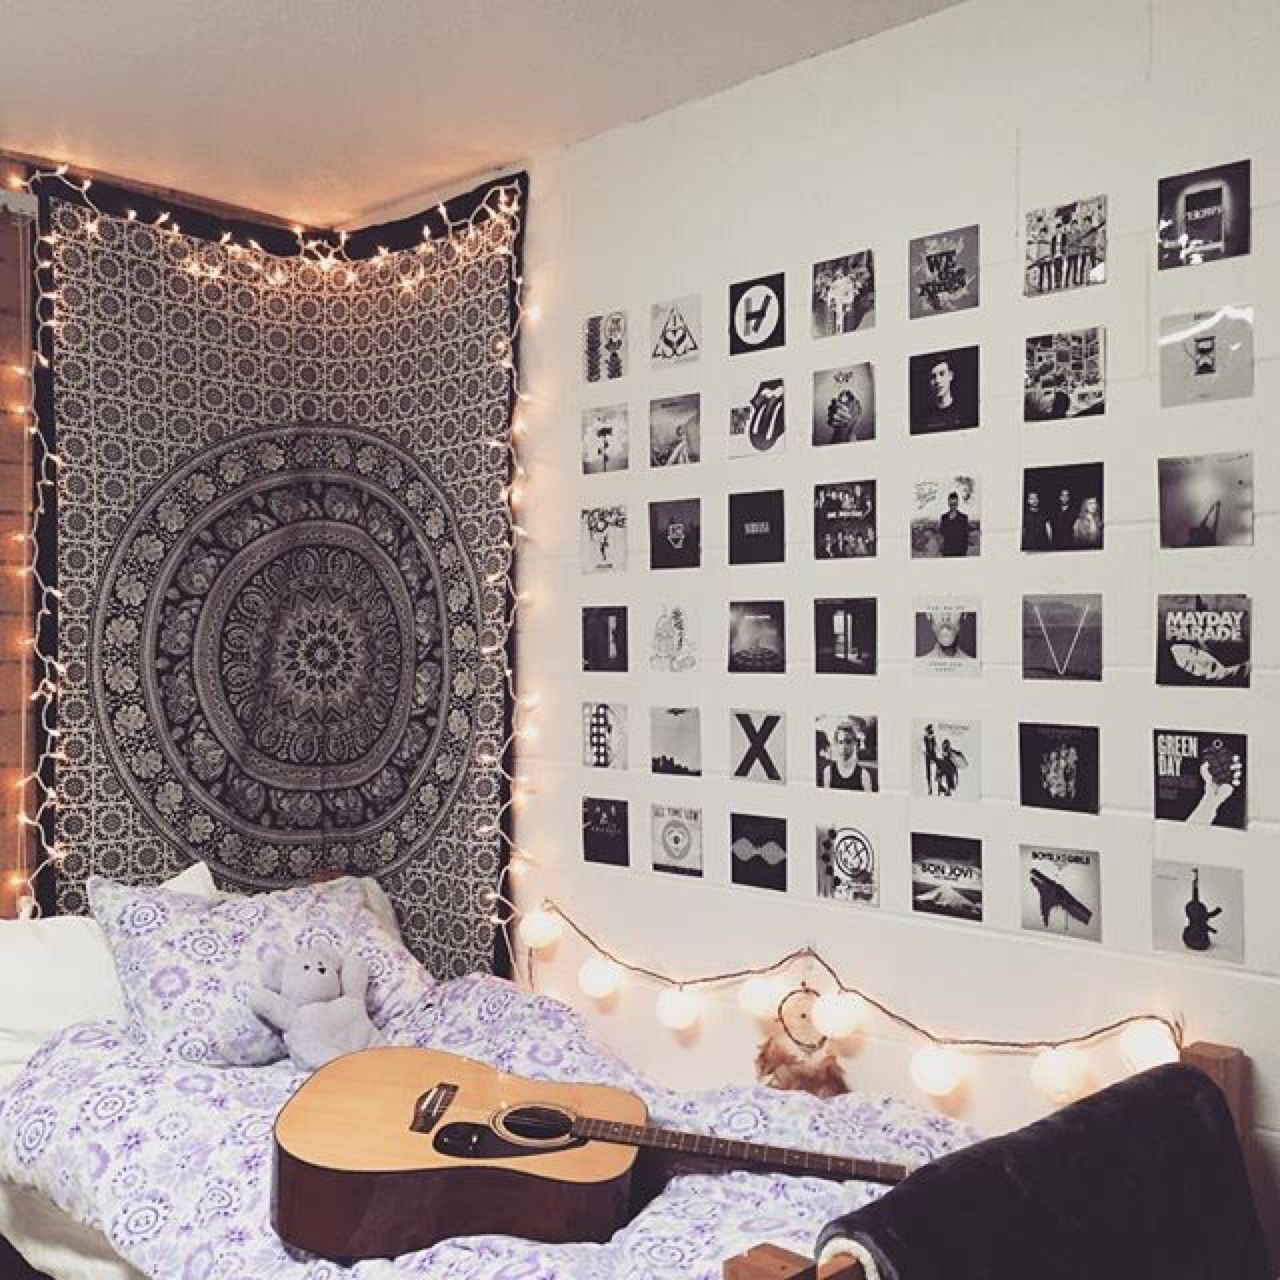 Bedroom design for teenagers tumblr - Source Myroomspo Tapestry Bedroom Tumblr Bedroom Decoration Room Decor Diy Room Inspiration Poster Lights Fairy Lights